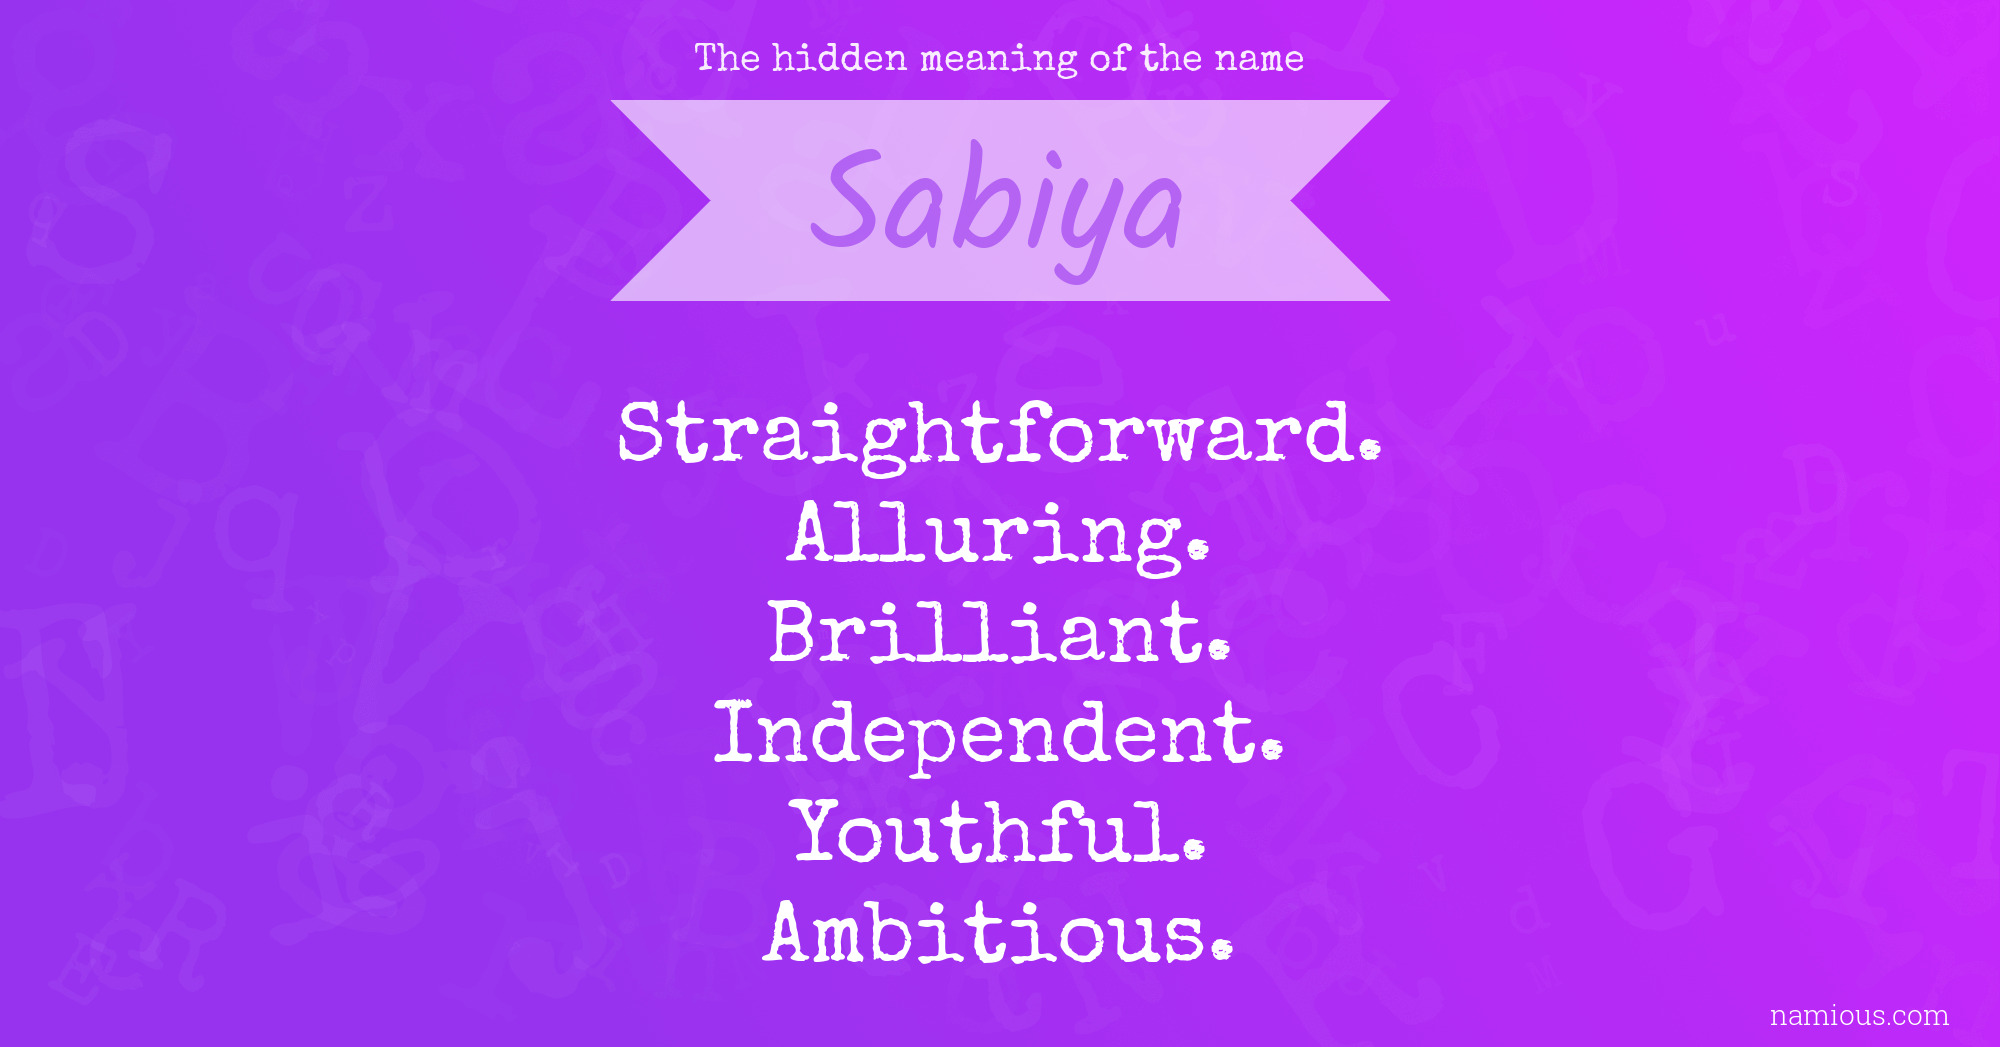 The Hidden Meaning Of The Name Sabiya Namious